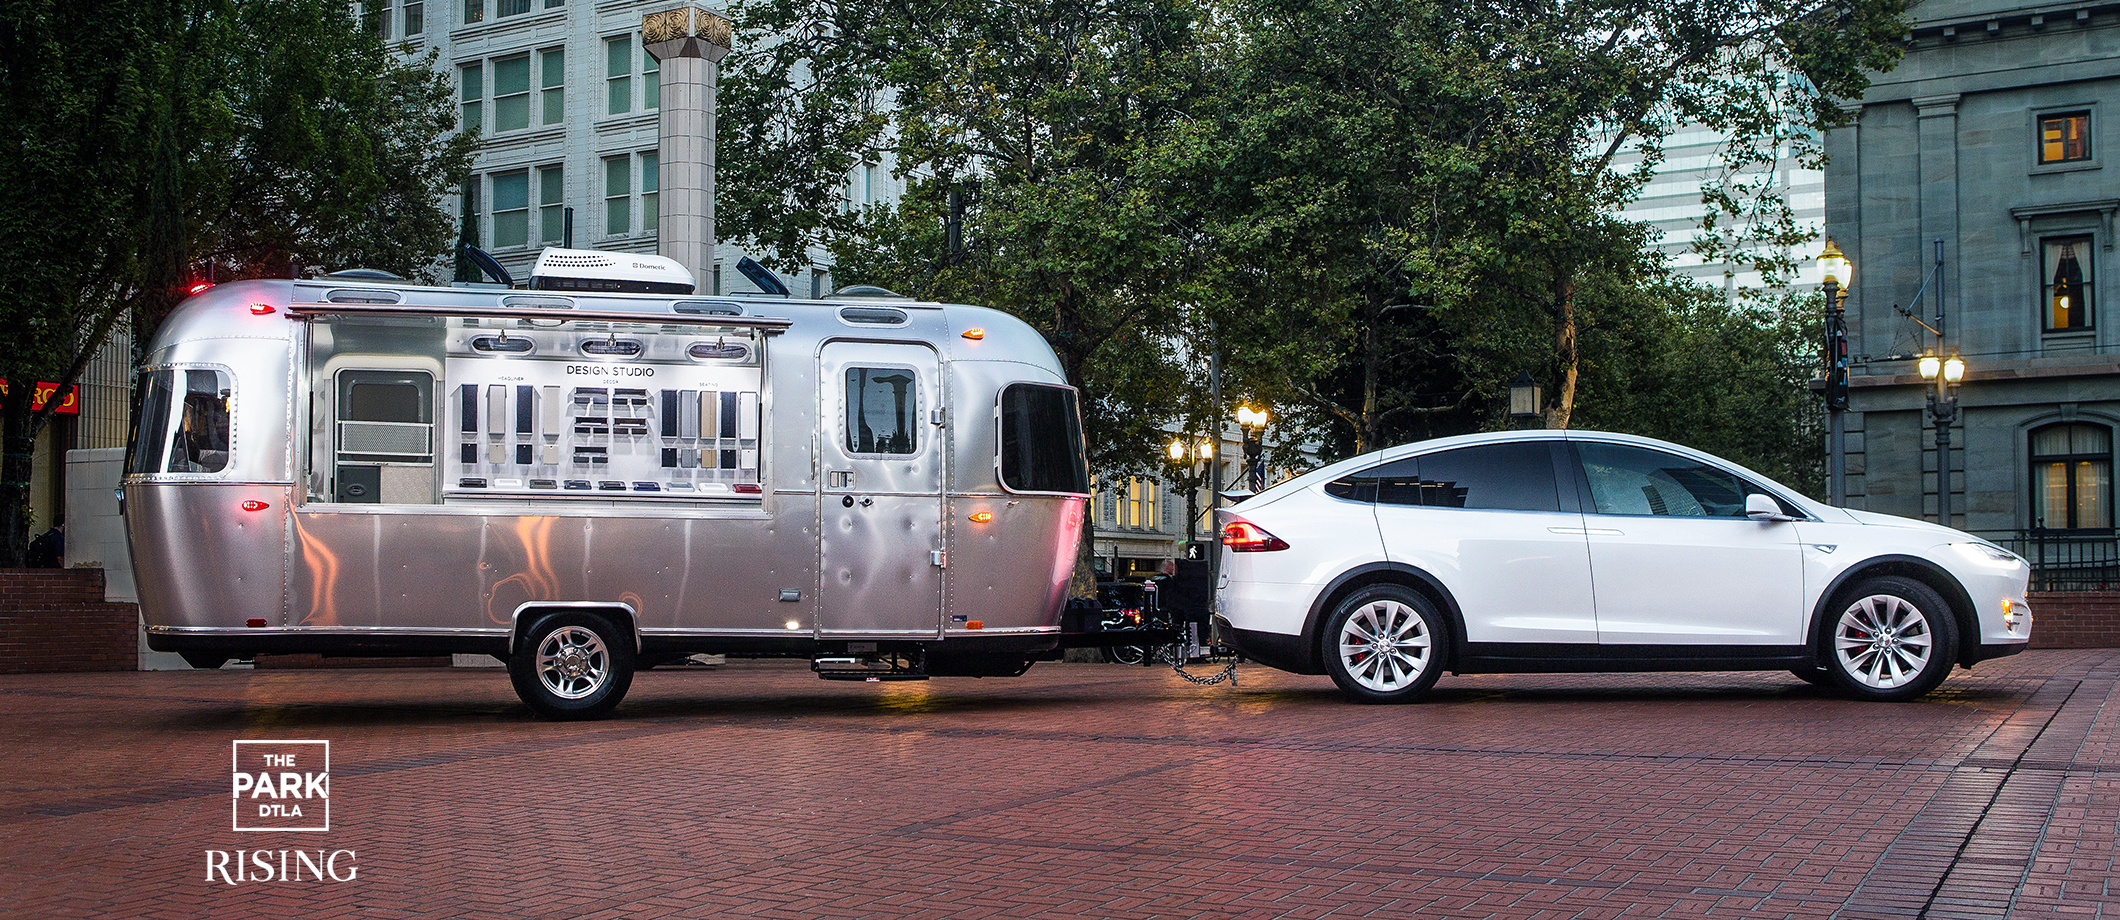 2120x920_Airstream 3.png